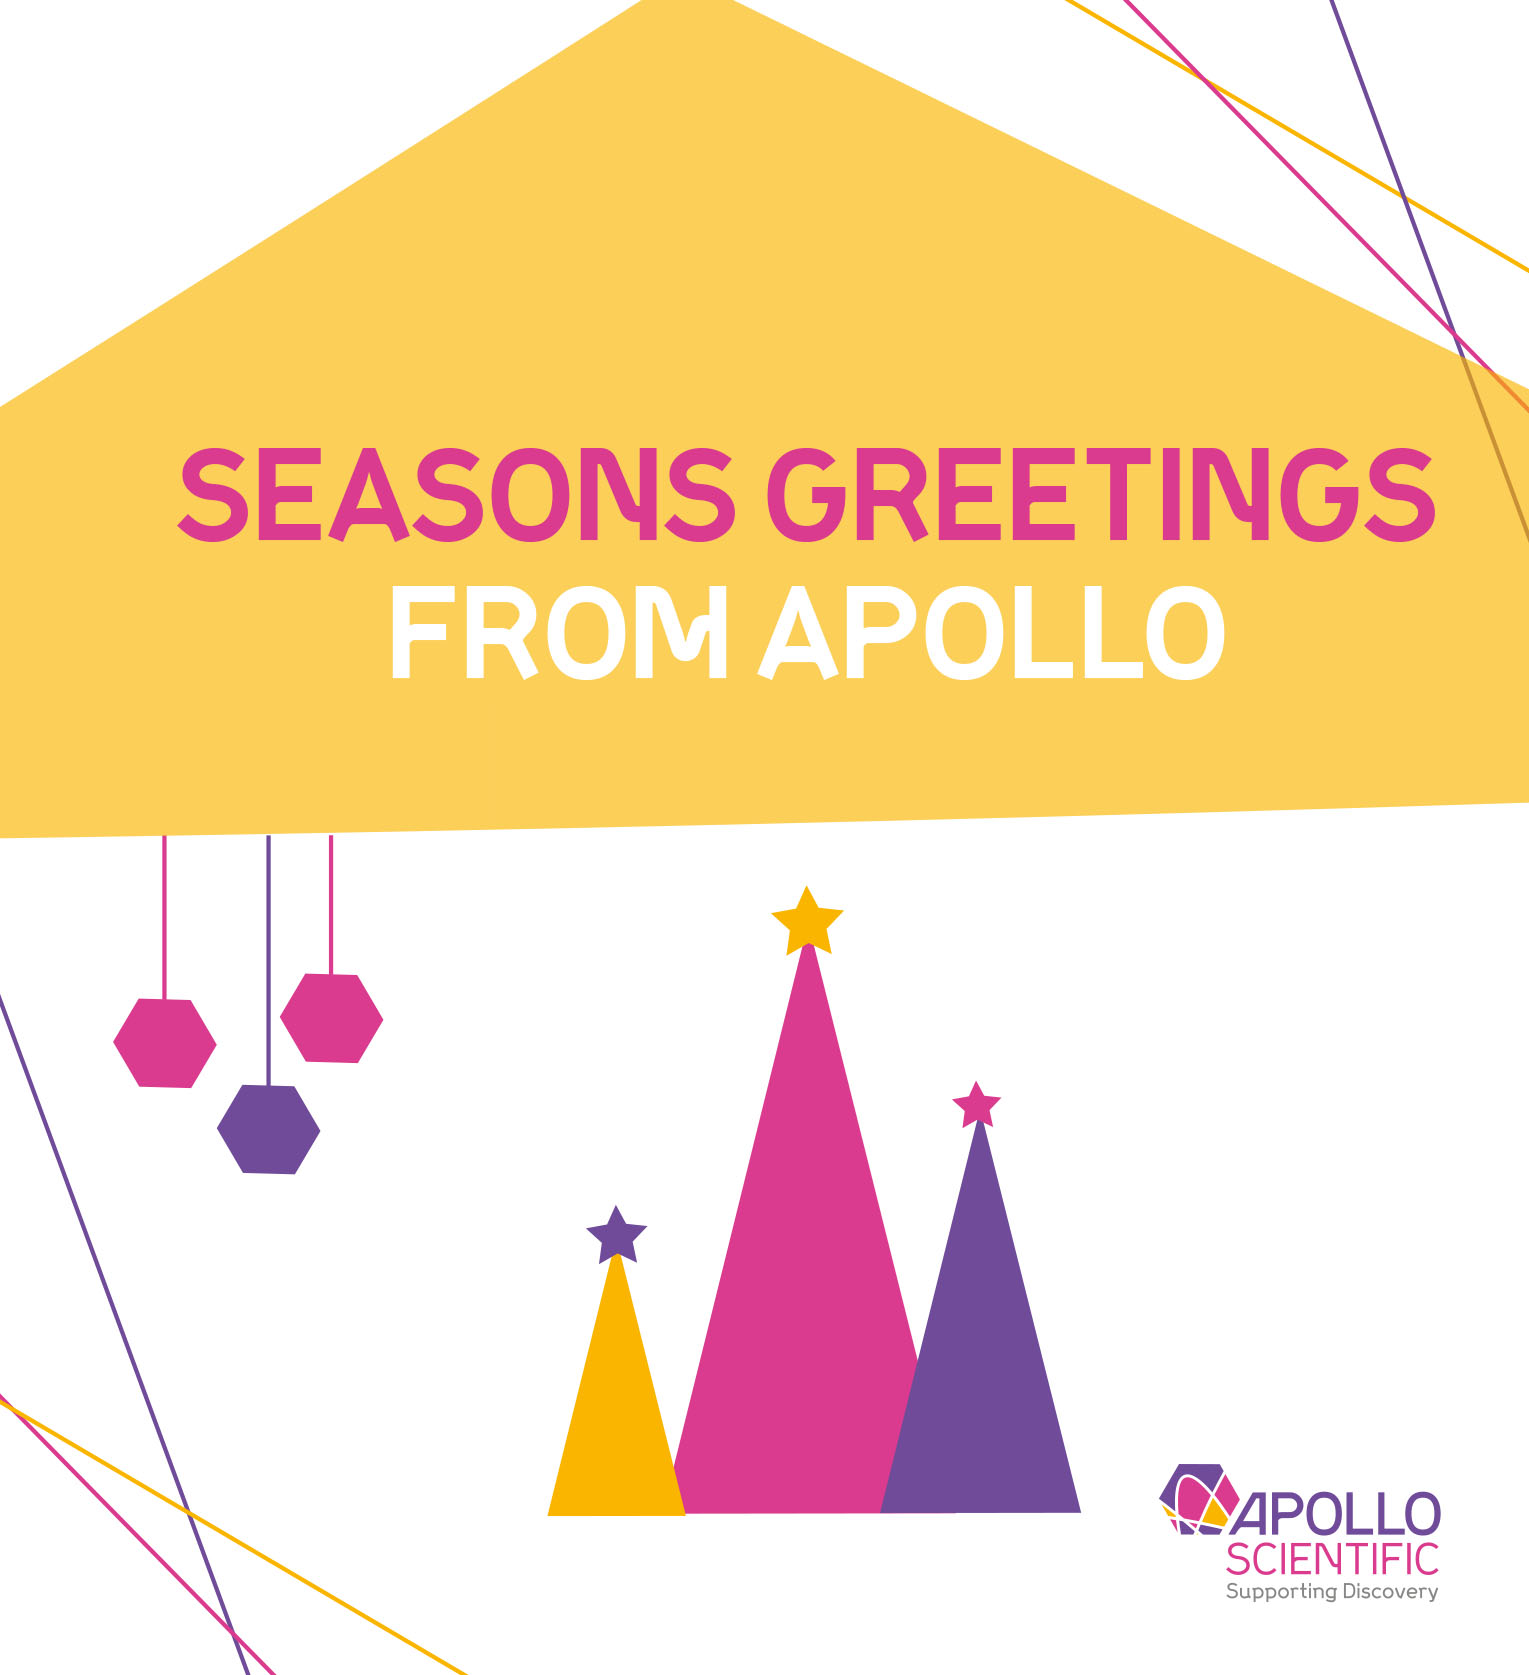 Seasons Greetings from Apollo thumbnail image